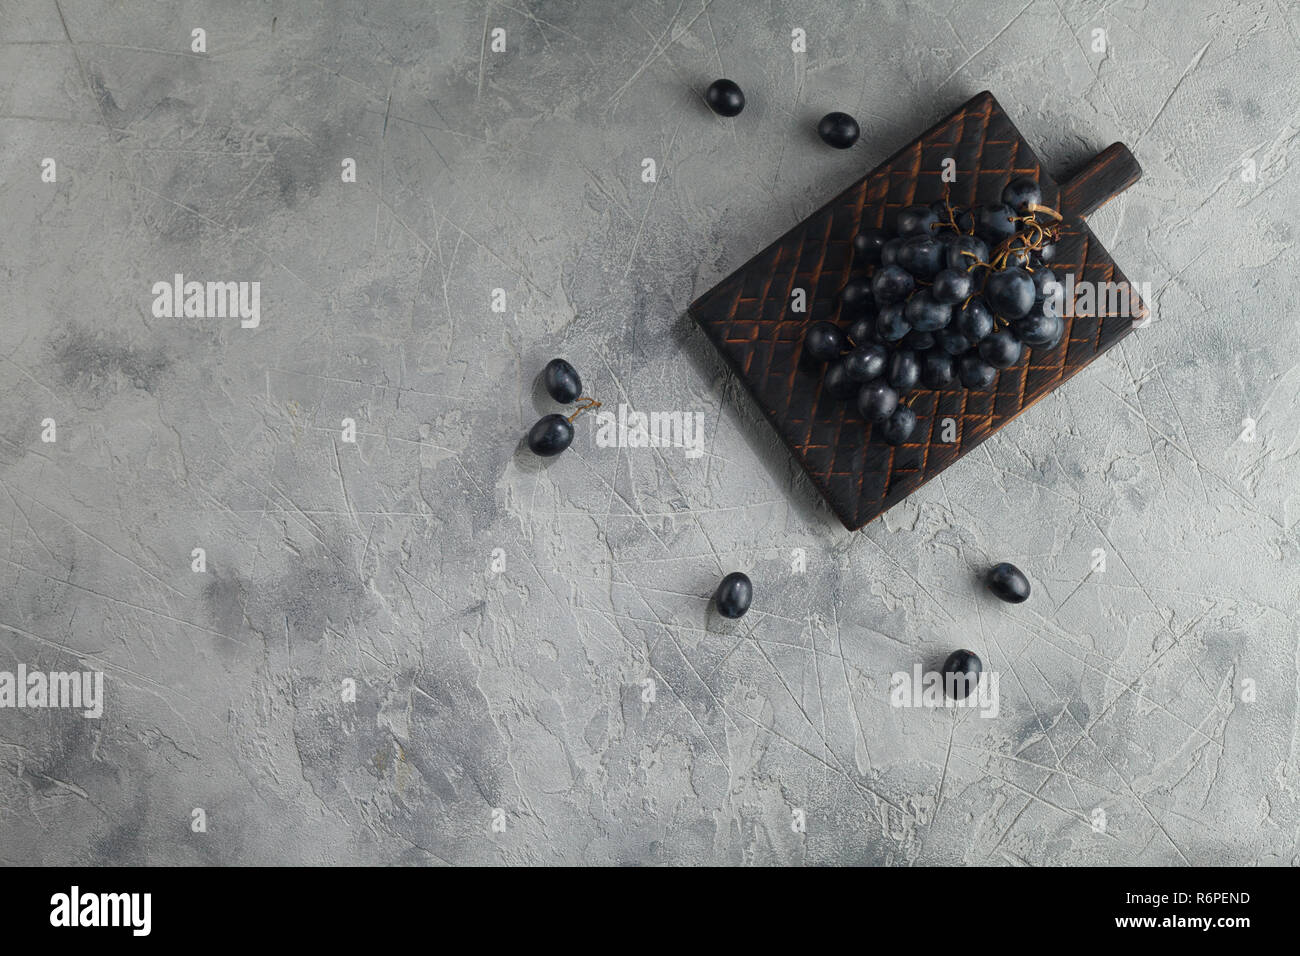 Dark grapes on the board on a textured gray background. Top view with space for text. Stock Photo